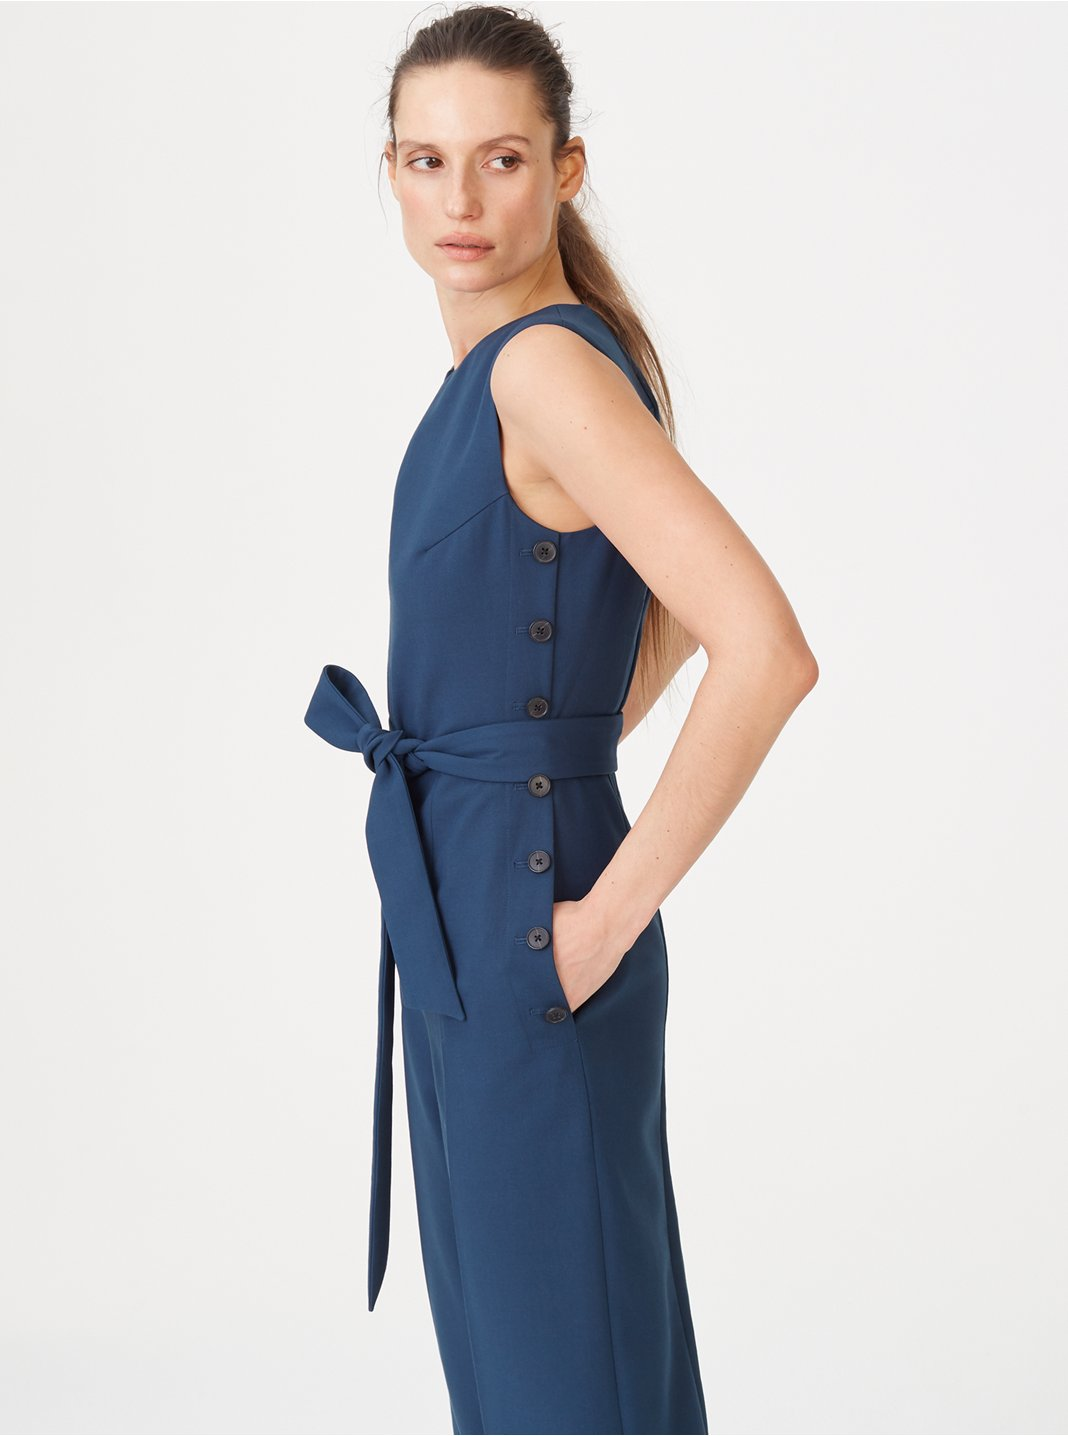 클럽 모나코 Klauss 점프수트 Club Monaco Klauss Jumpsuit,Canyon Blue